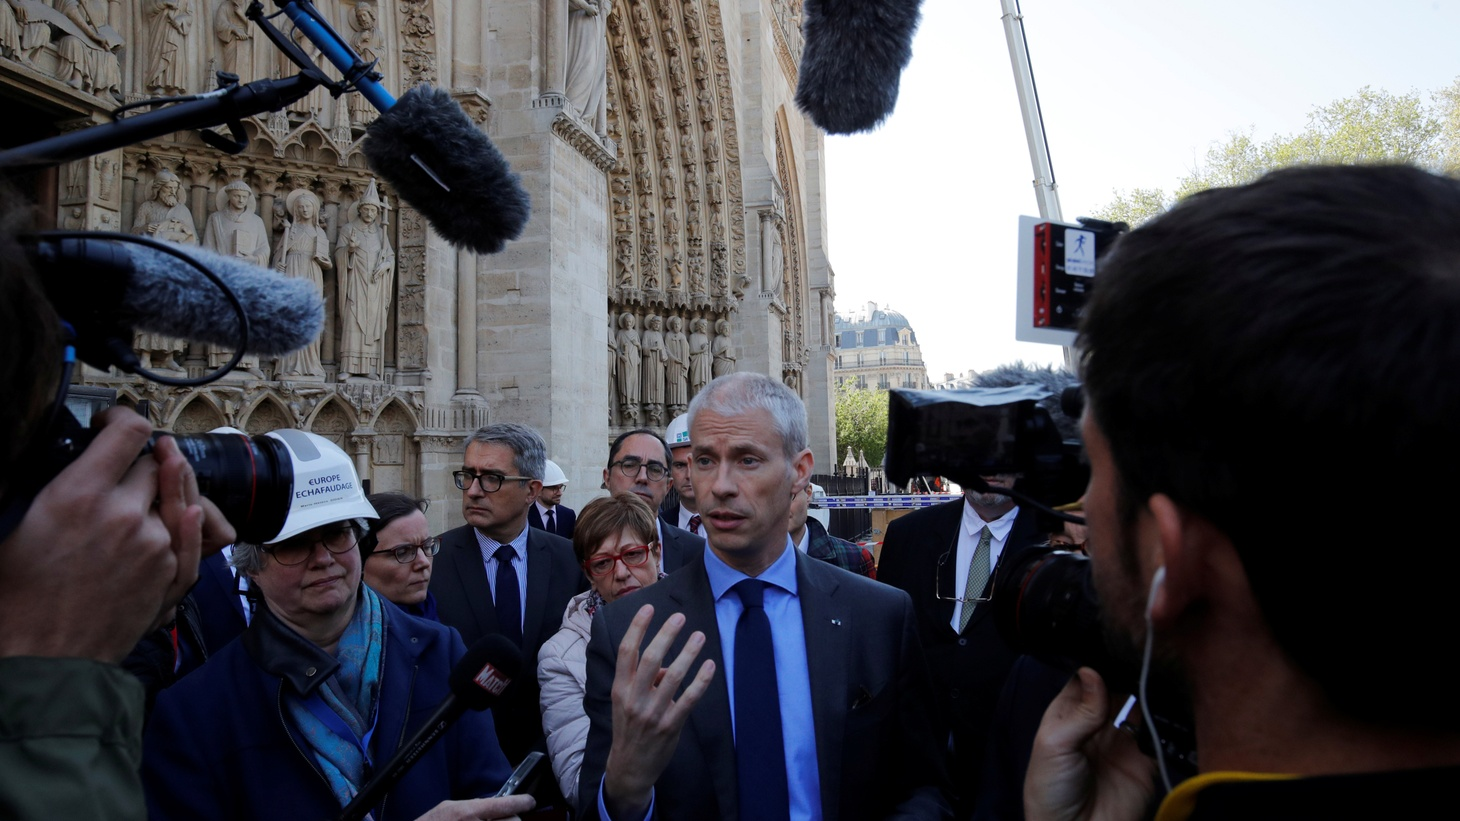 French Culutre Minister Franck Riester talks to journalists in front of the Notre-Dame Cathedral about the securing of the large artworks after a massive fire devastated large parts of the gothic structure in Paris, France, April 19, 2019.